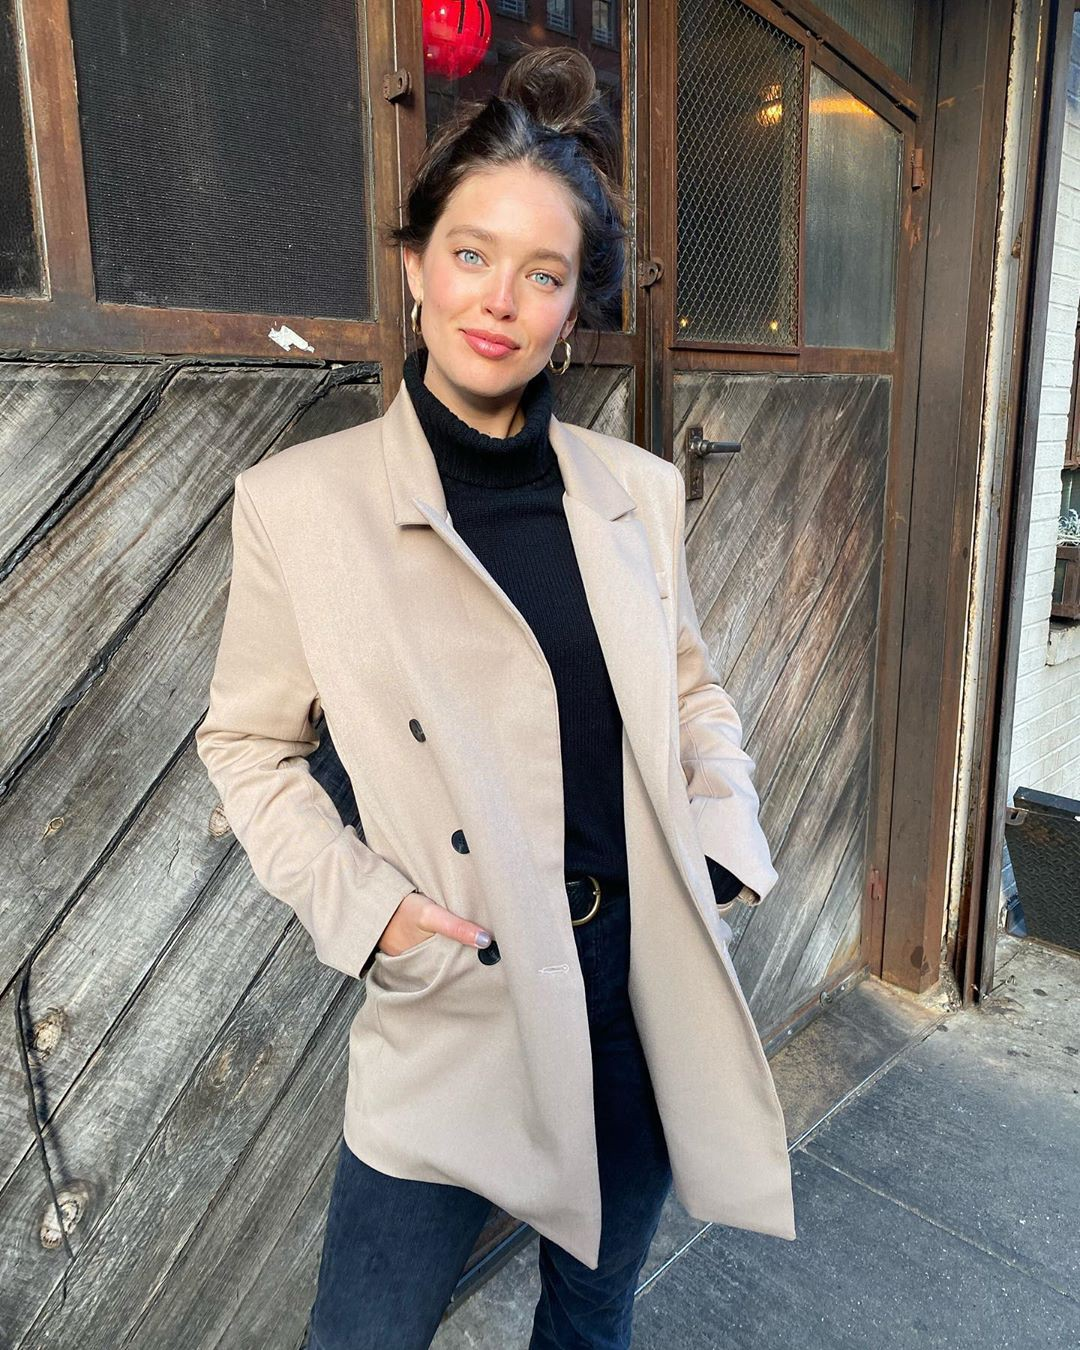 Emily DiDonato trench coat, overcoat, blazer outfits for girls